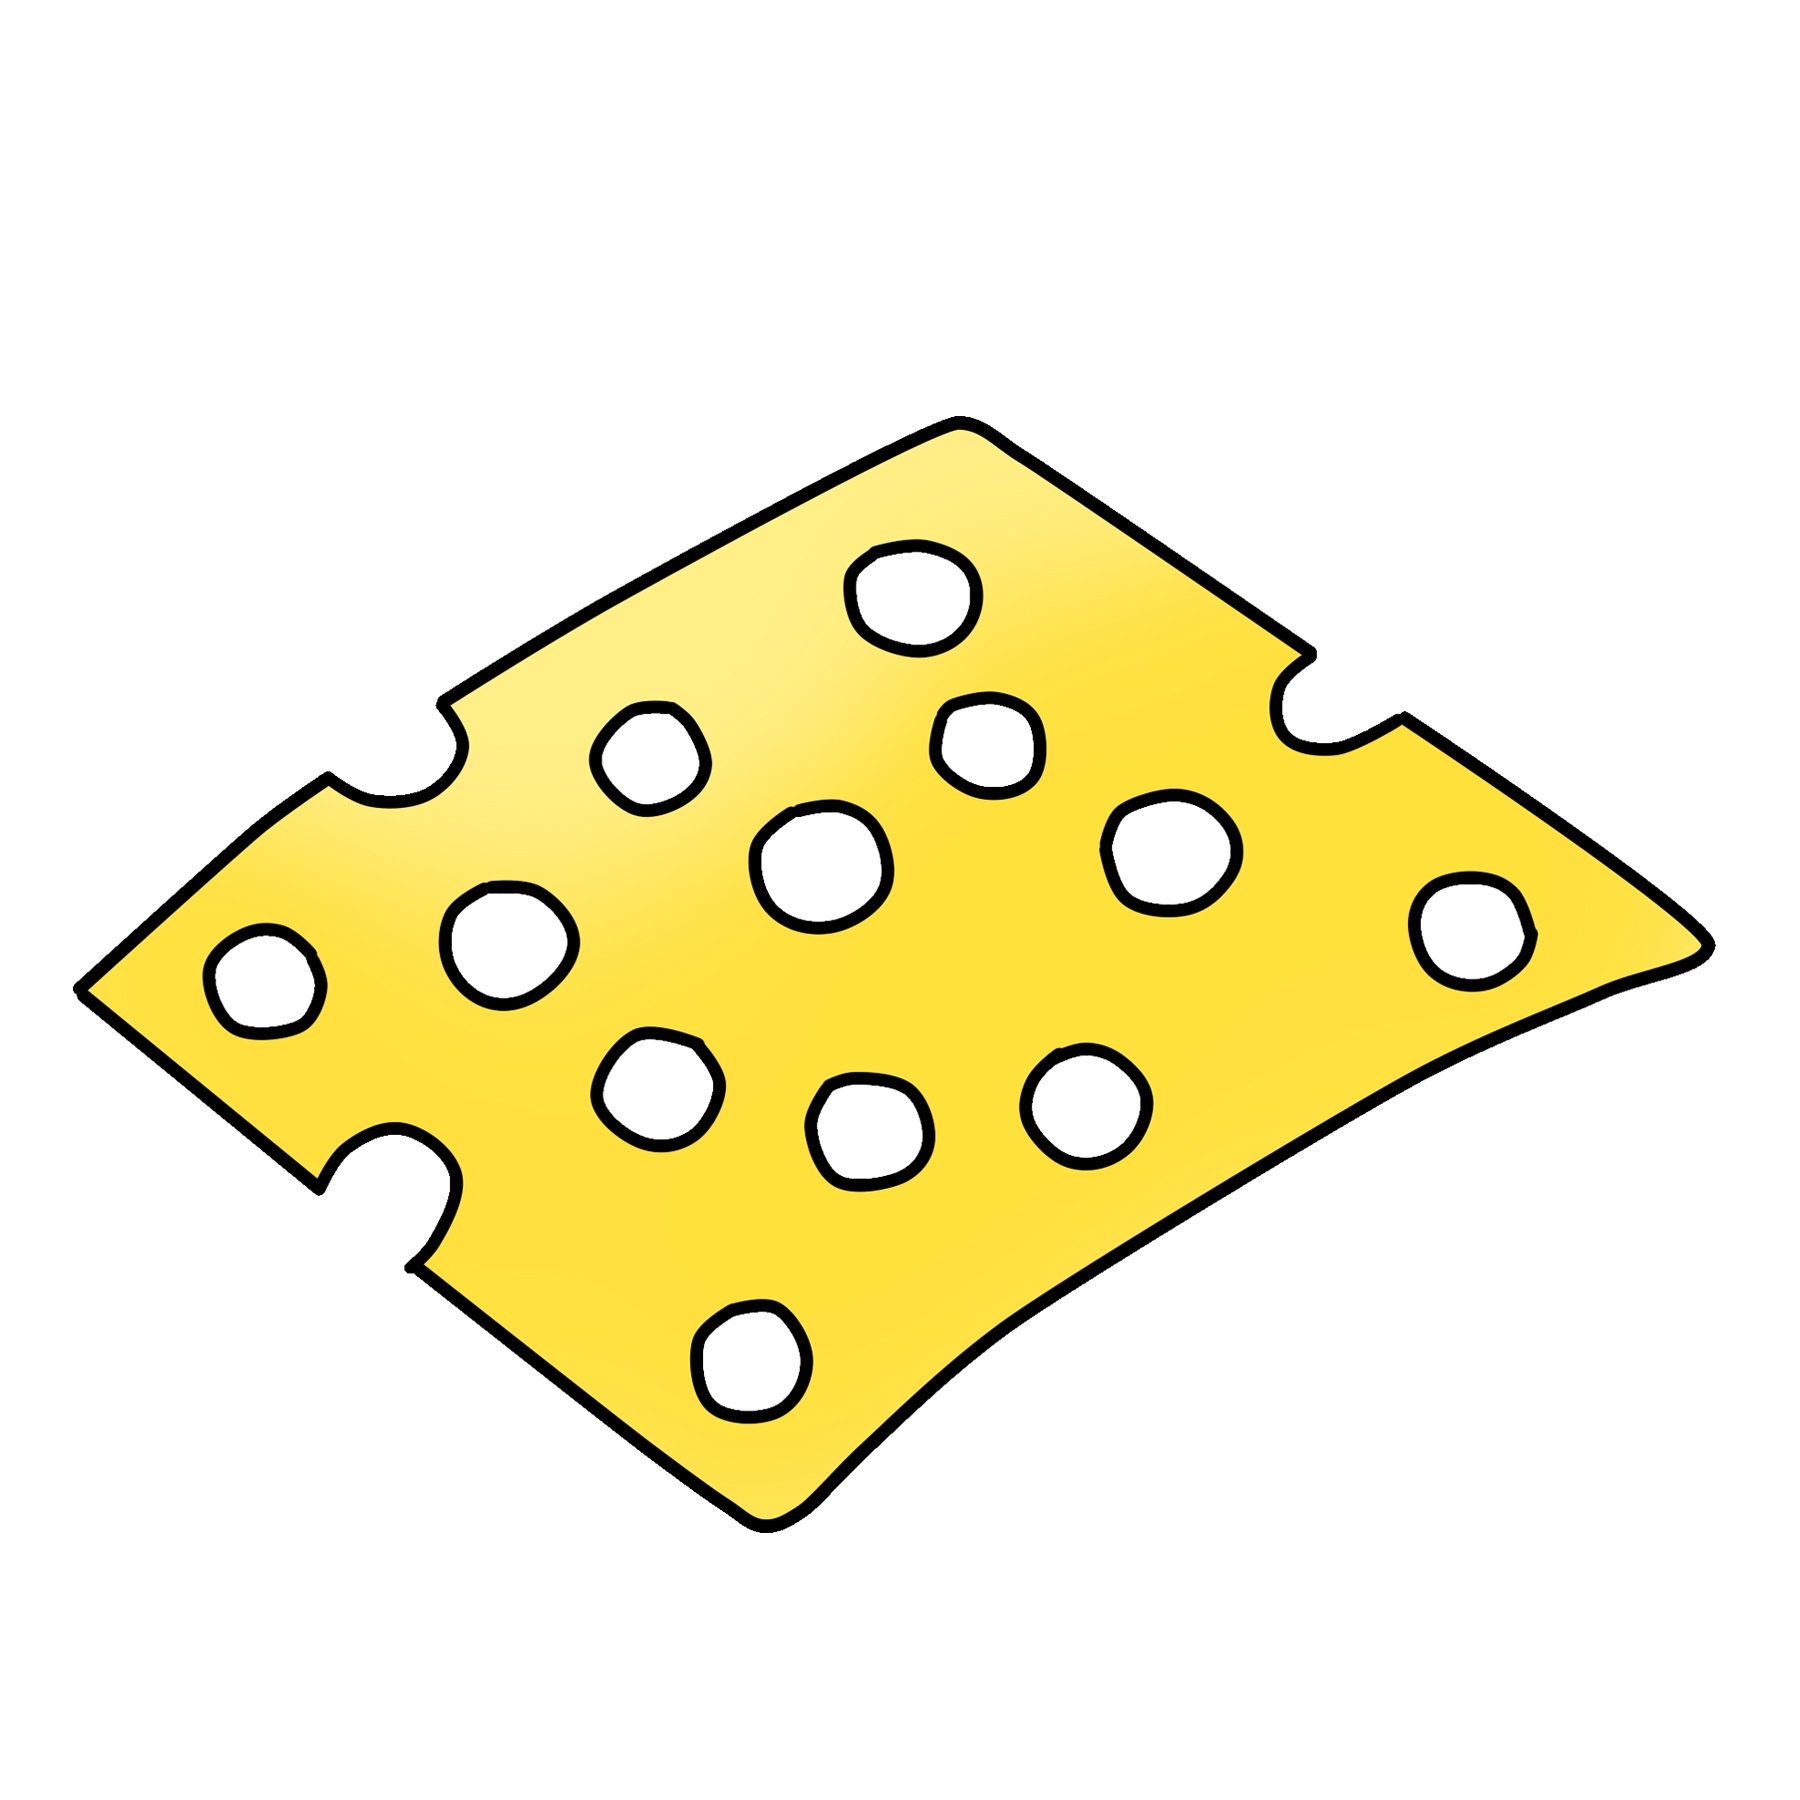 Cheese clipart swiss cheese. Download graphic school